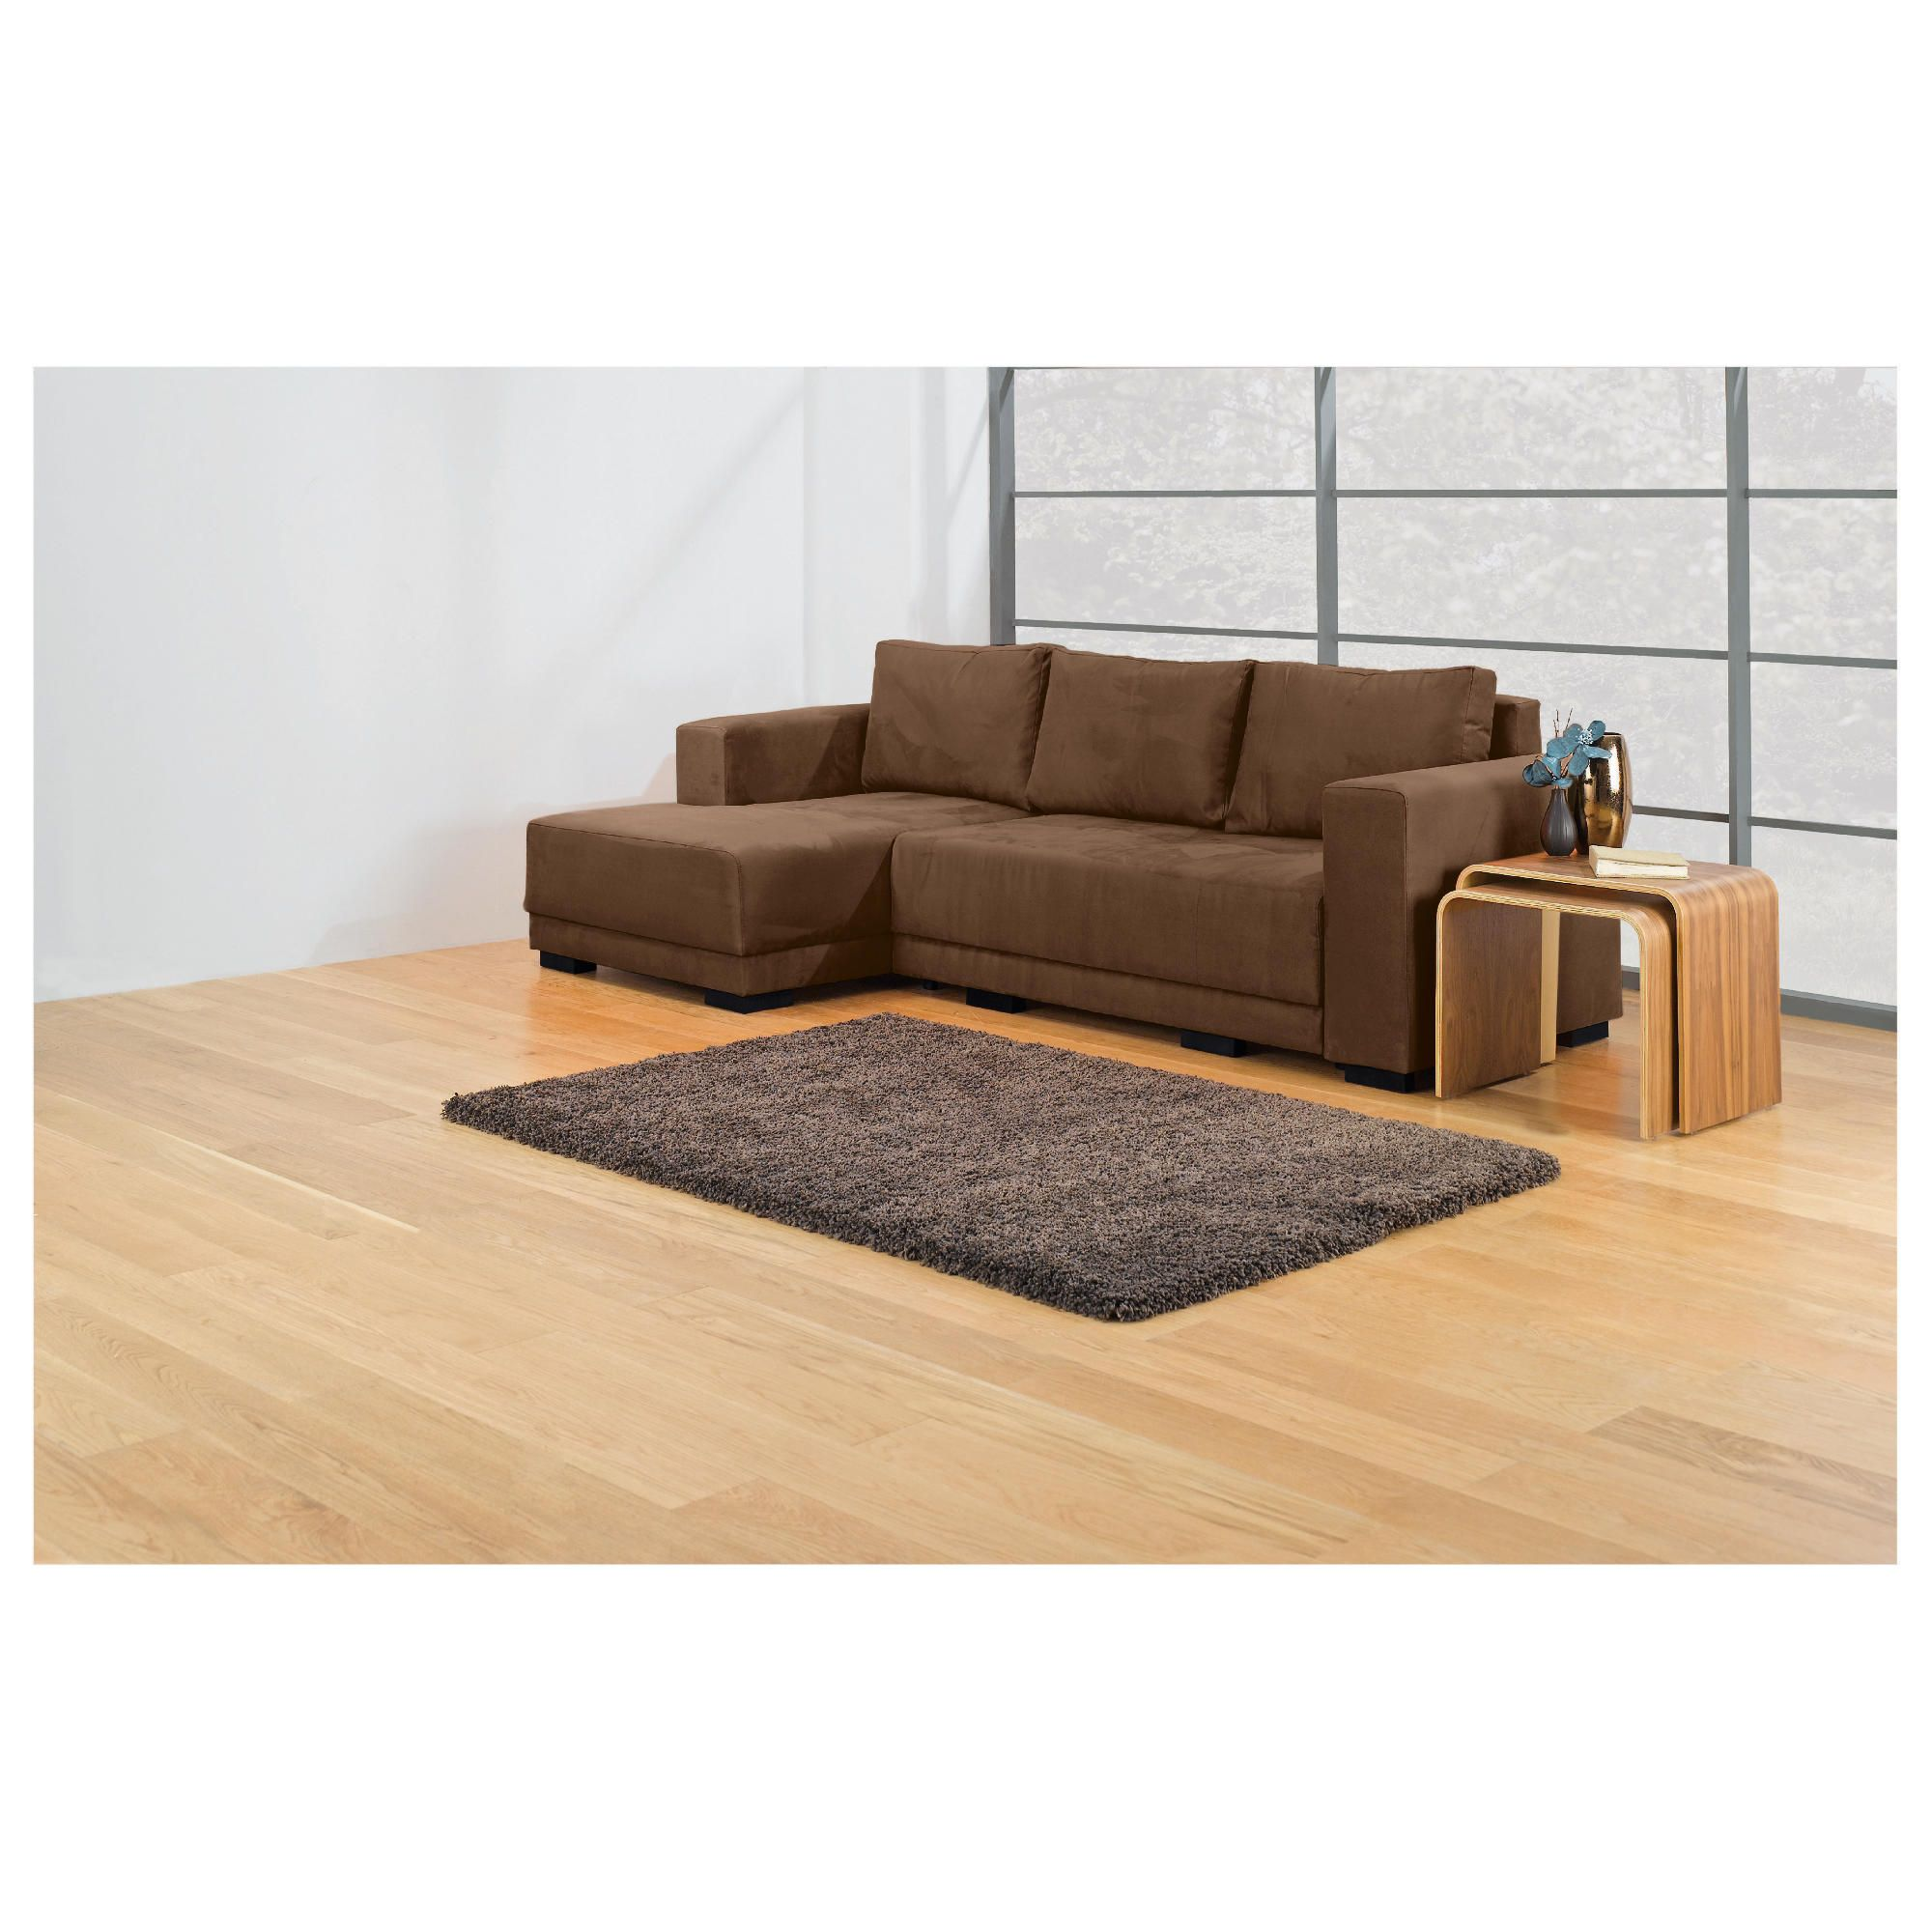 Grant Chaise Sofa Bed Left Hand Facing, Light Brown at Tesco Direct